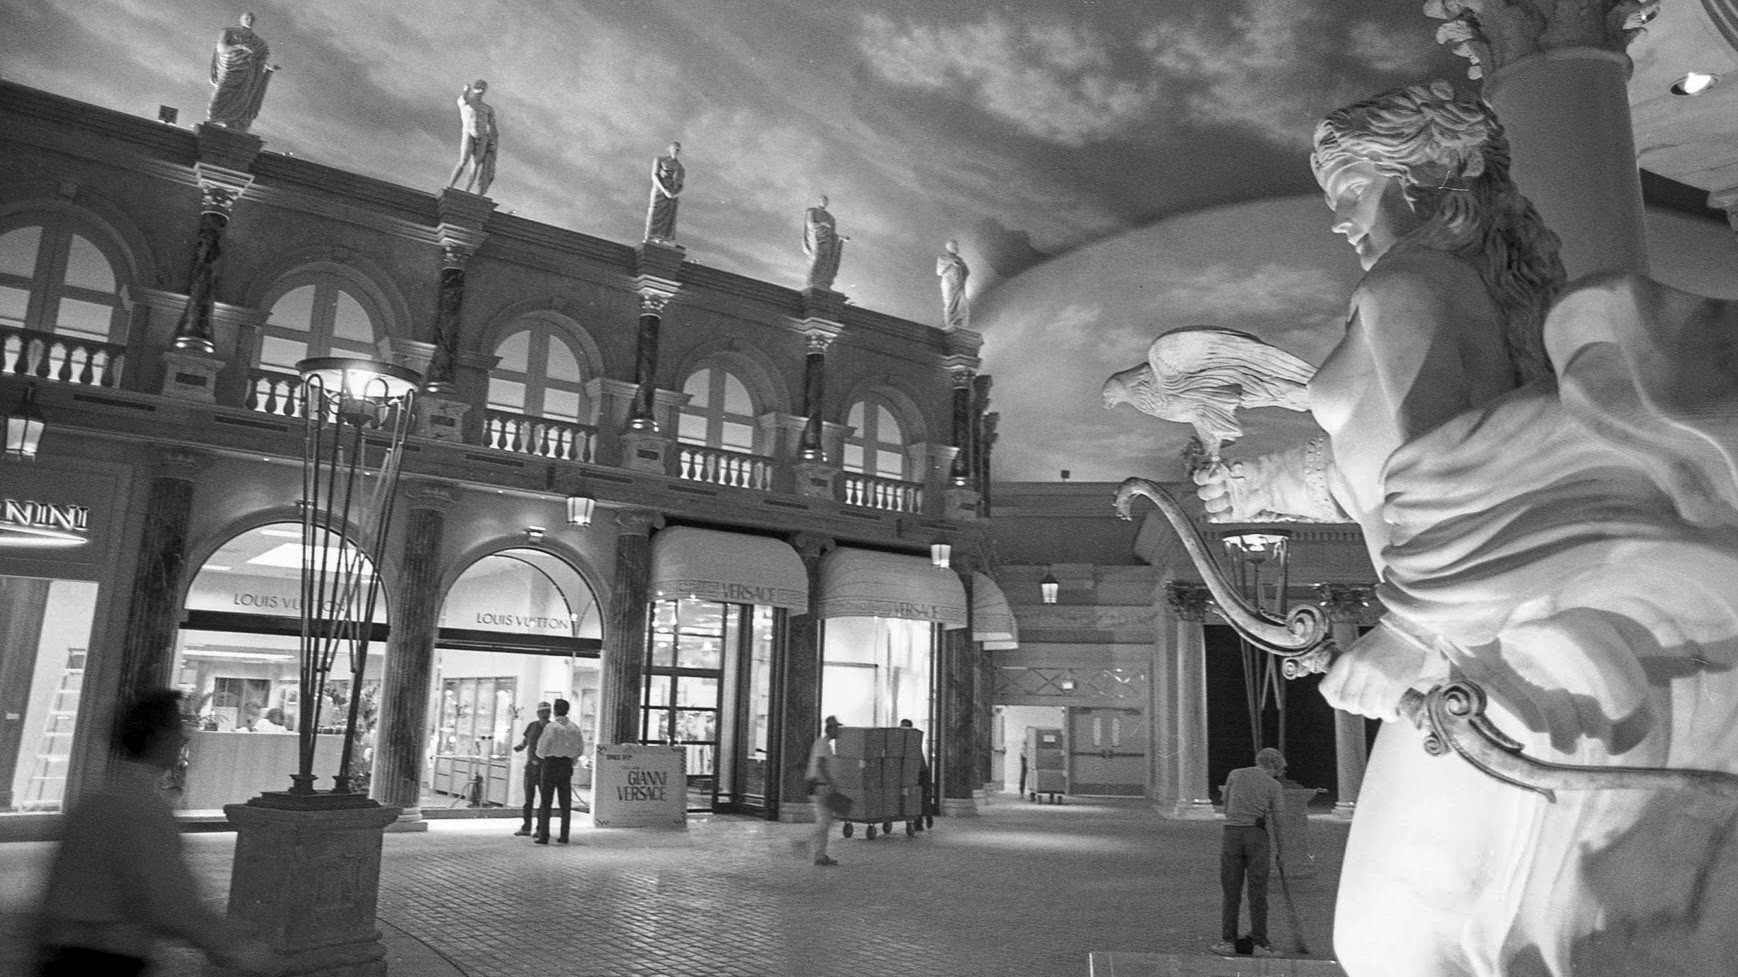 In early 1992, workers were putting the finishing touches on the Forum Shops. It was the Strip's first full-scale shopping center.